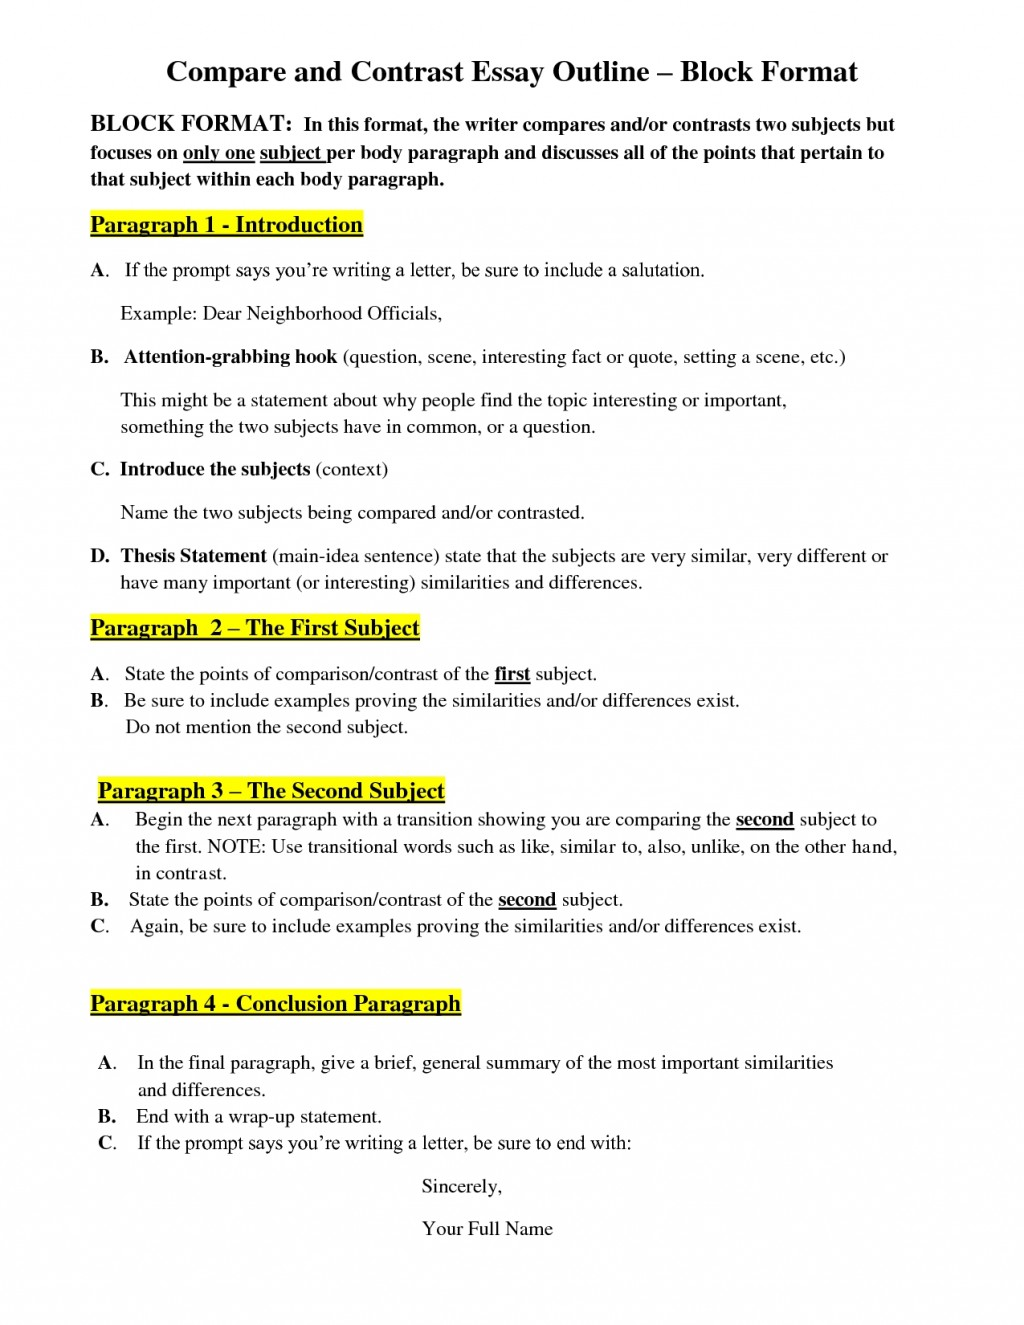 004 Essay Template Compare Contrast Outline Example Maxresdefault Creating Project Plan For Your Youtube How To An With Good Cover Letter Samples Point Wonderful By And Large